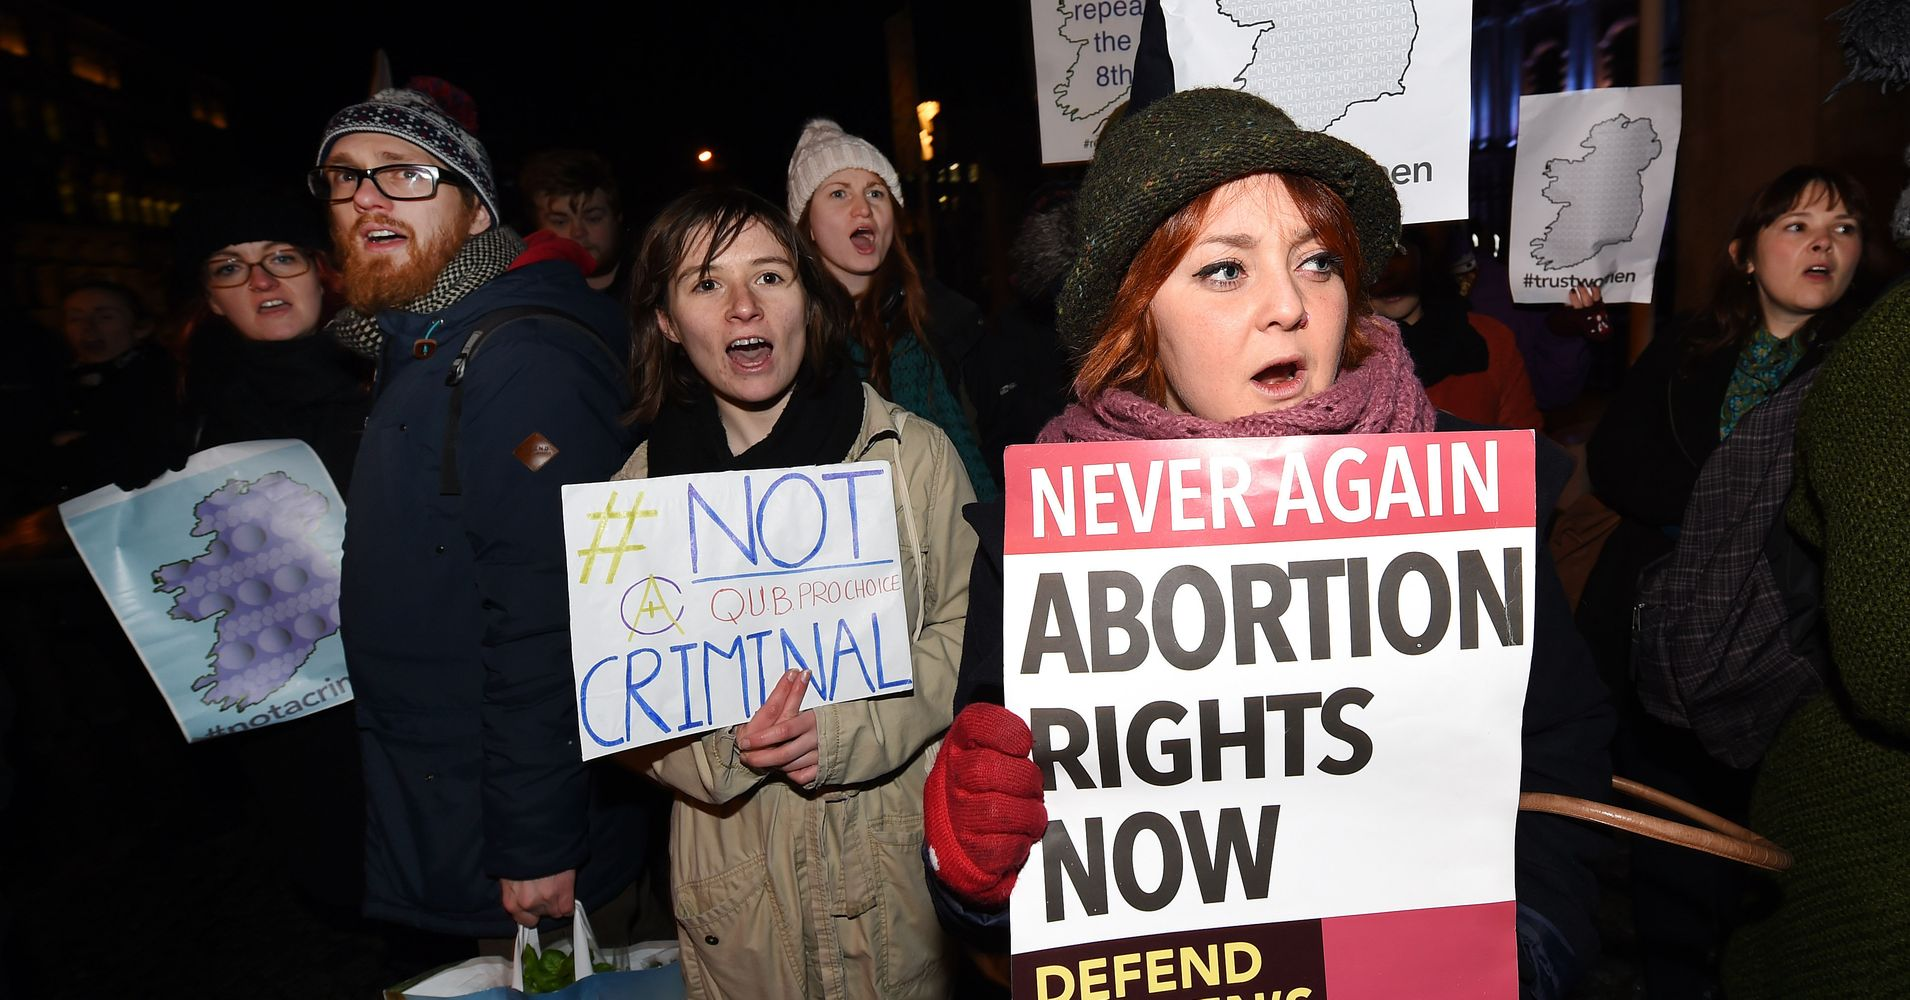 women s rights to abortion Despite criticism that young women today aren't as involved as previous generations in fighting for their rights, a new movement to assert abortion rights is leaning heavily on the contributions of young women, particularly grassroots movements and social media.